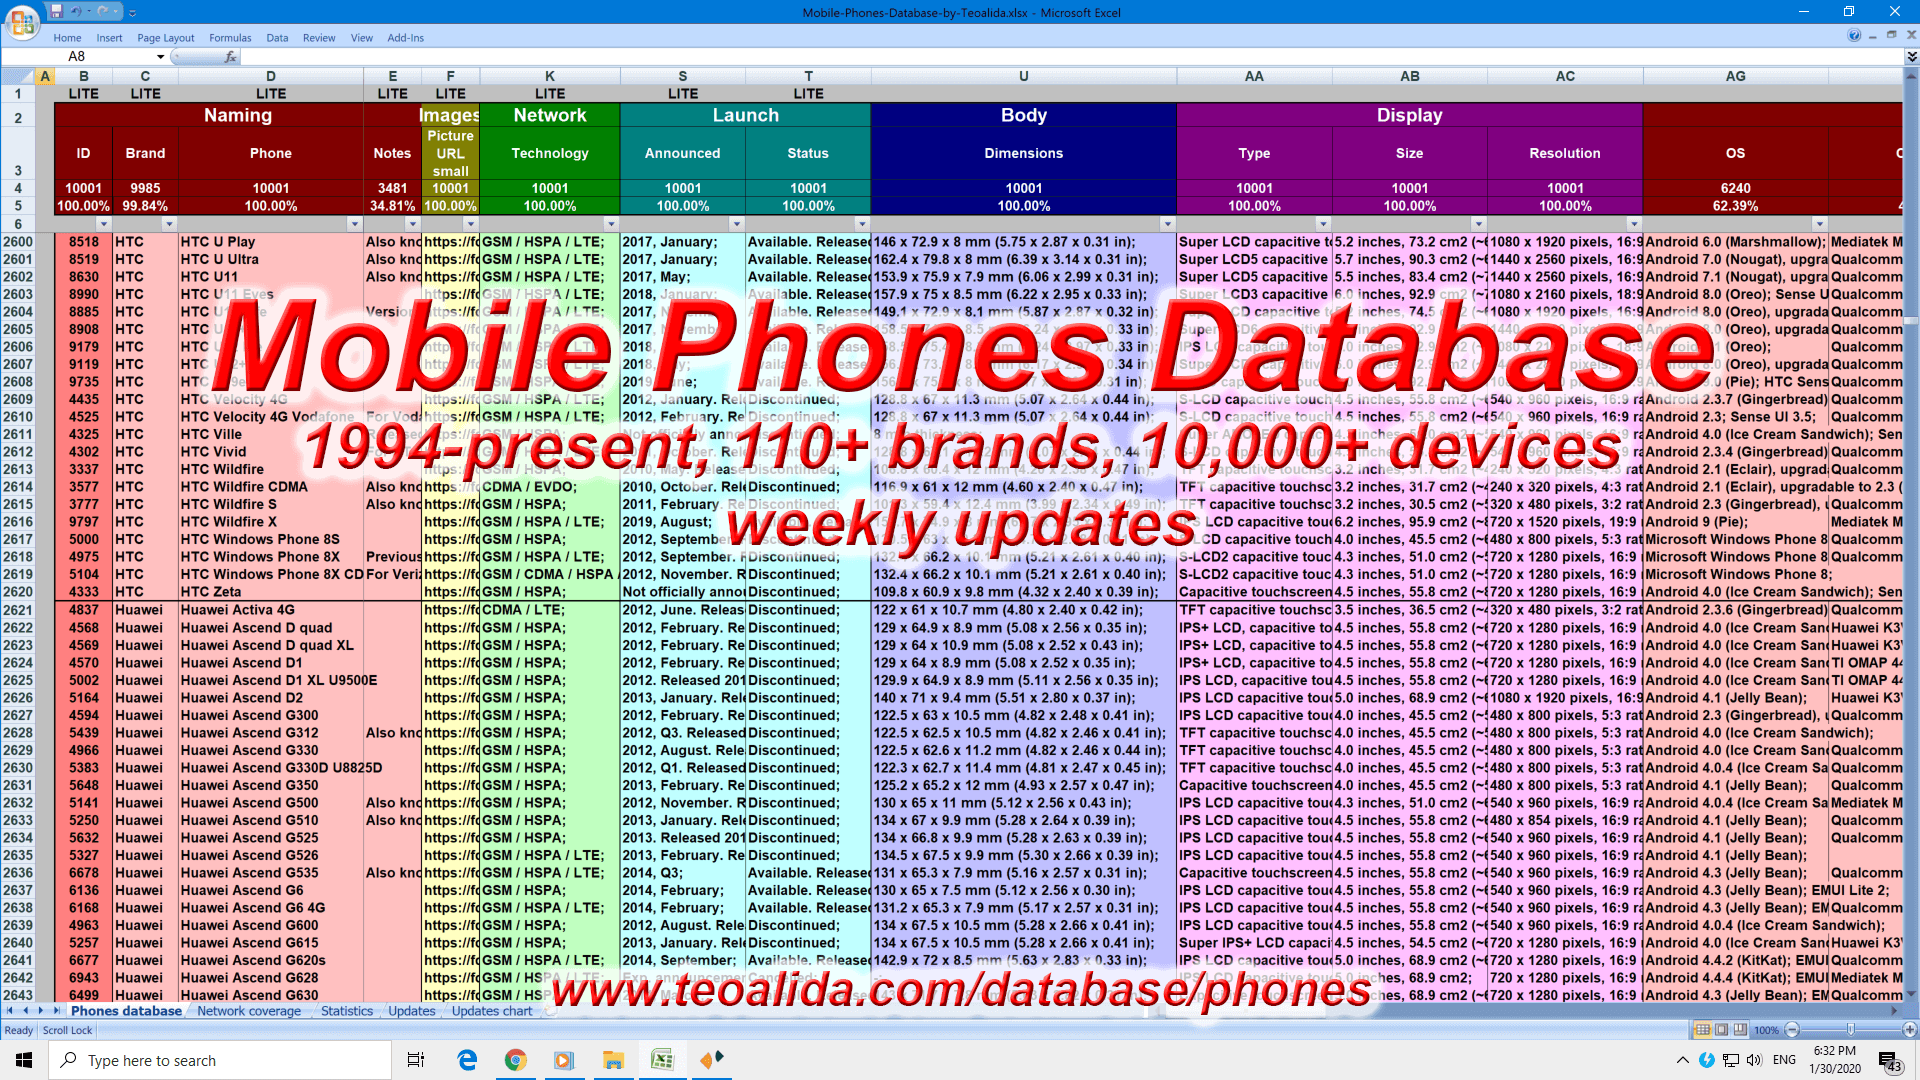 Mobile phones database, 114 brands, 9600+ models, 85 specifications